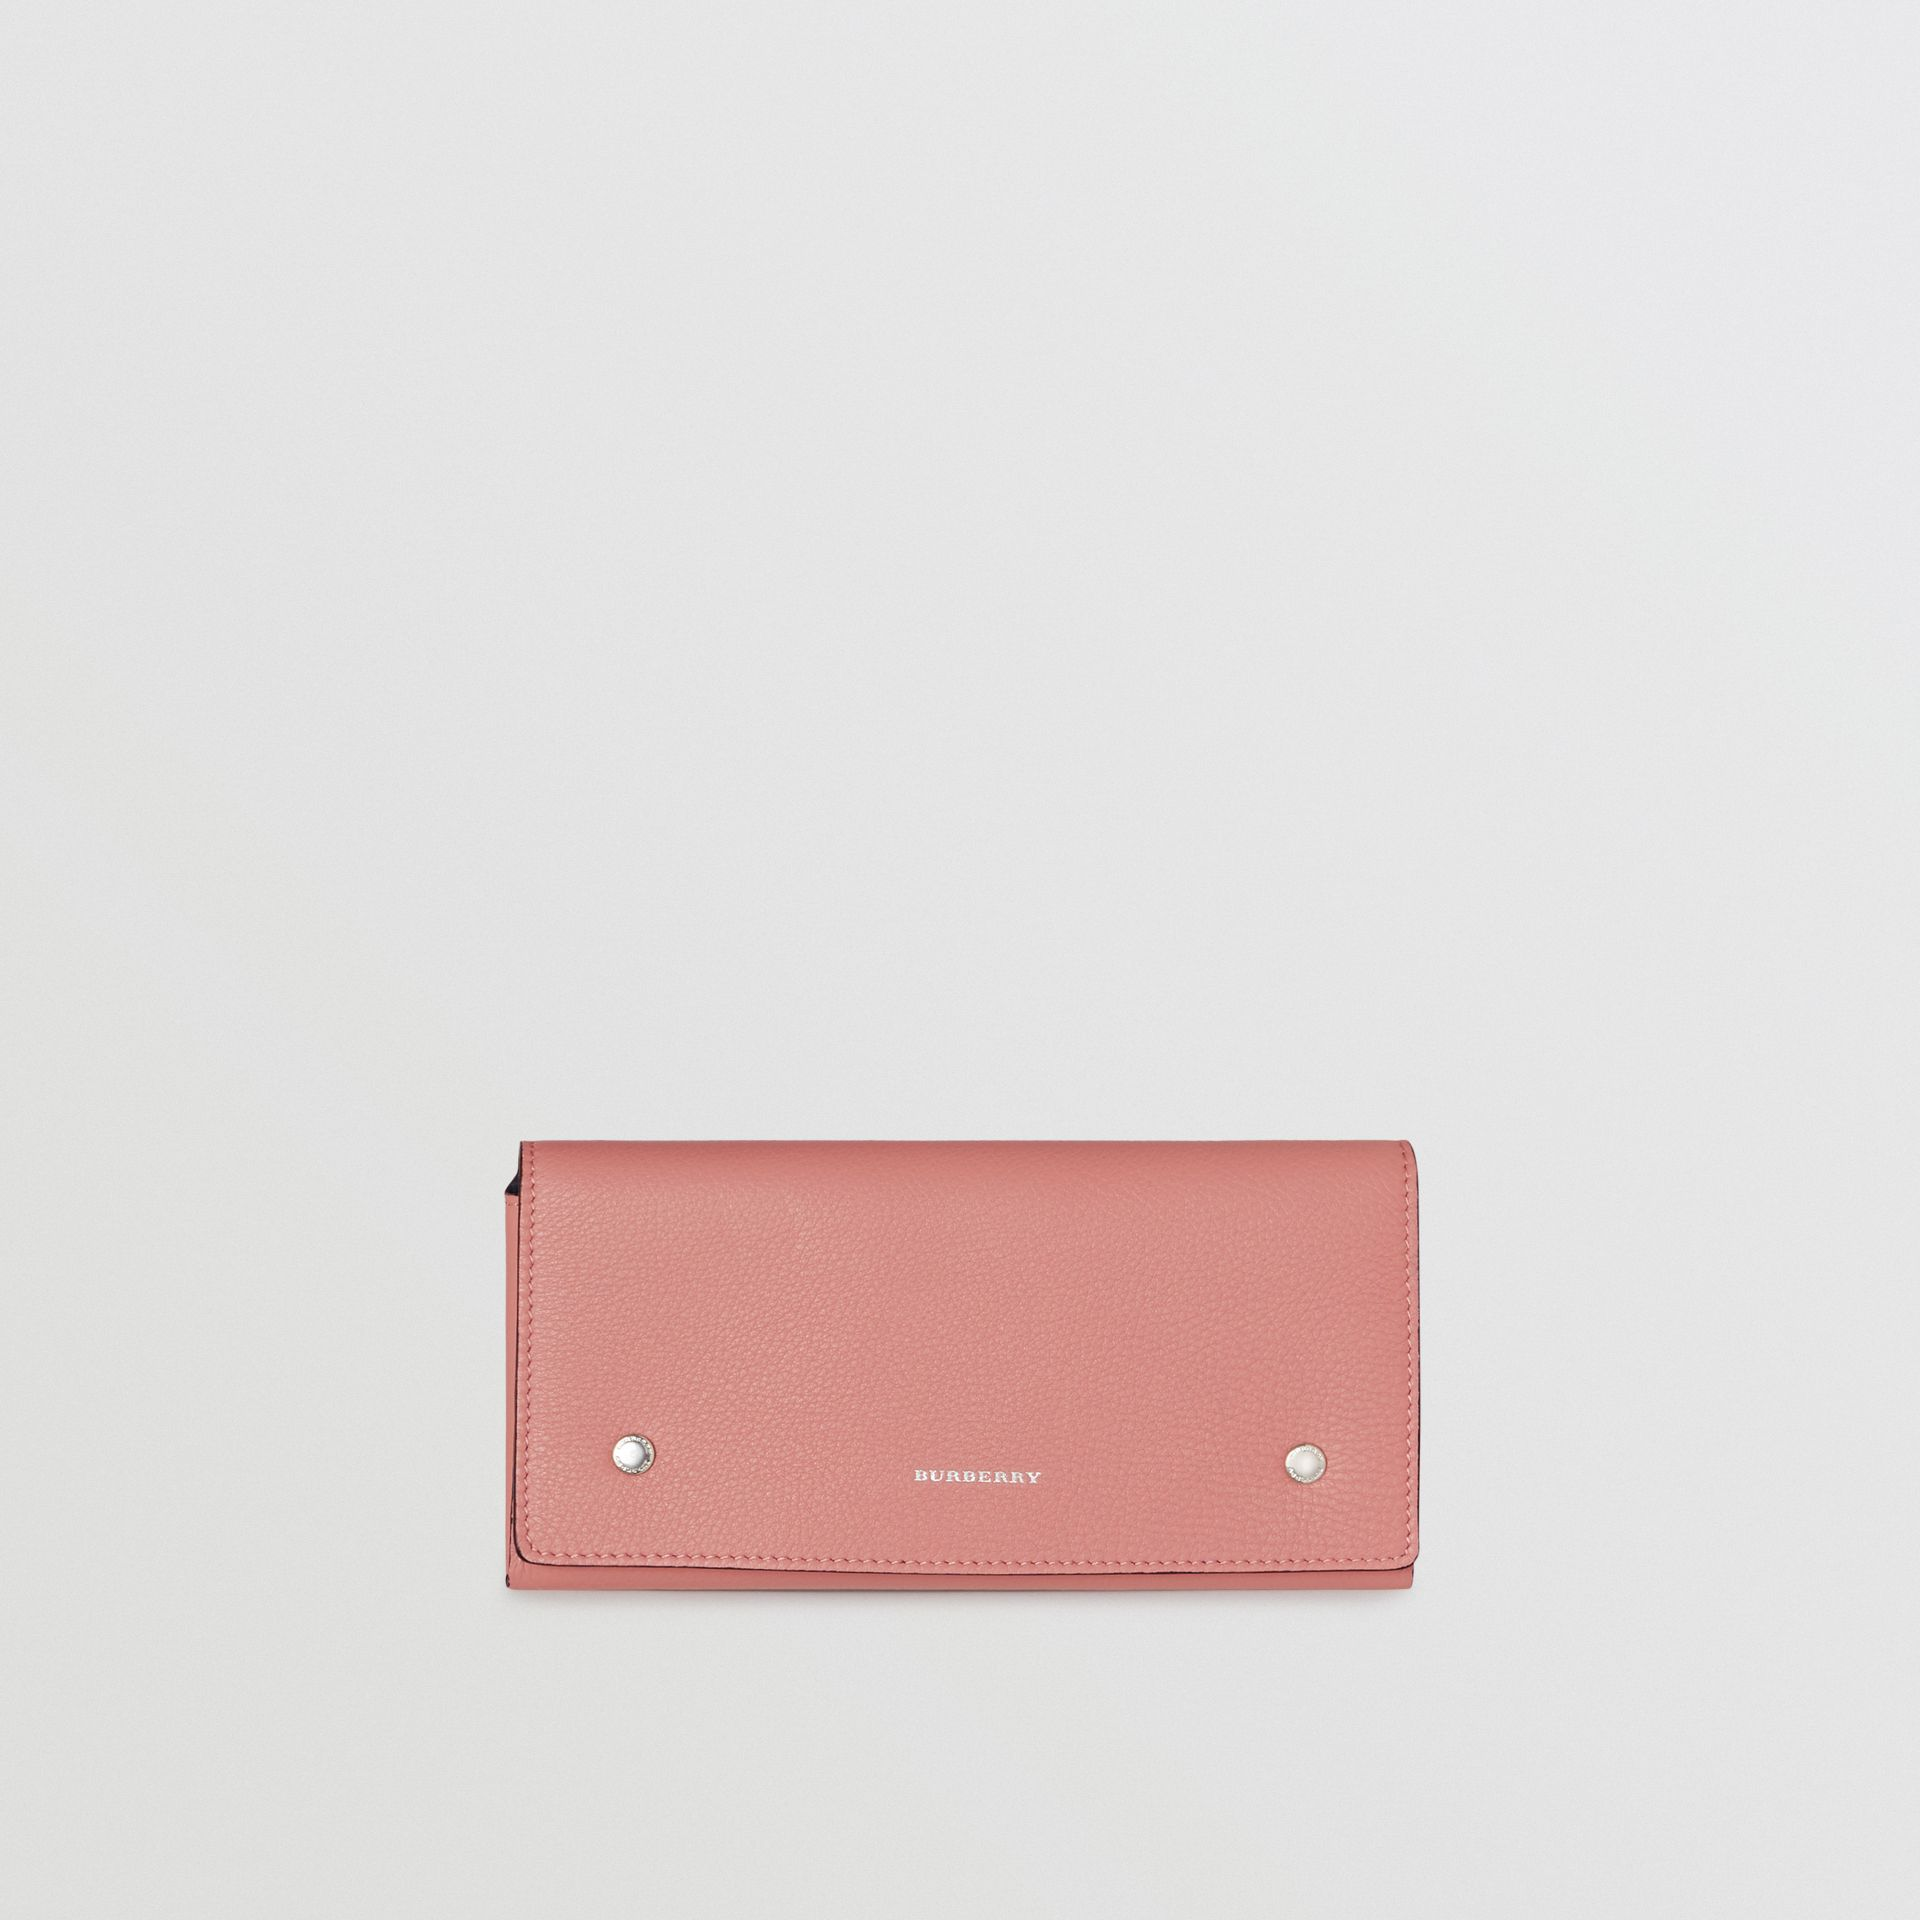 Two-tone Leather Continental Wallet in Dusty Rose - Women | Burberry United Kingdom - gallery image 5